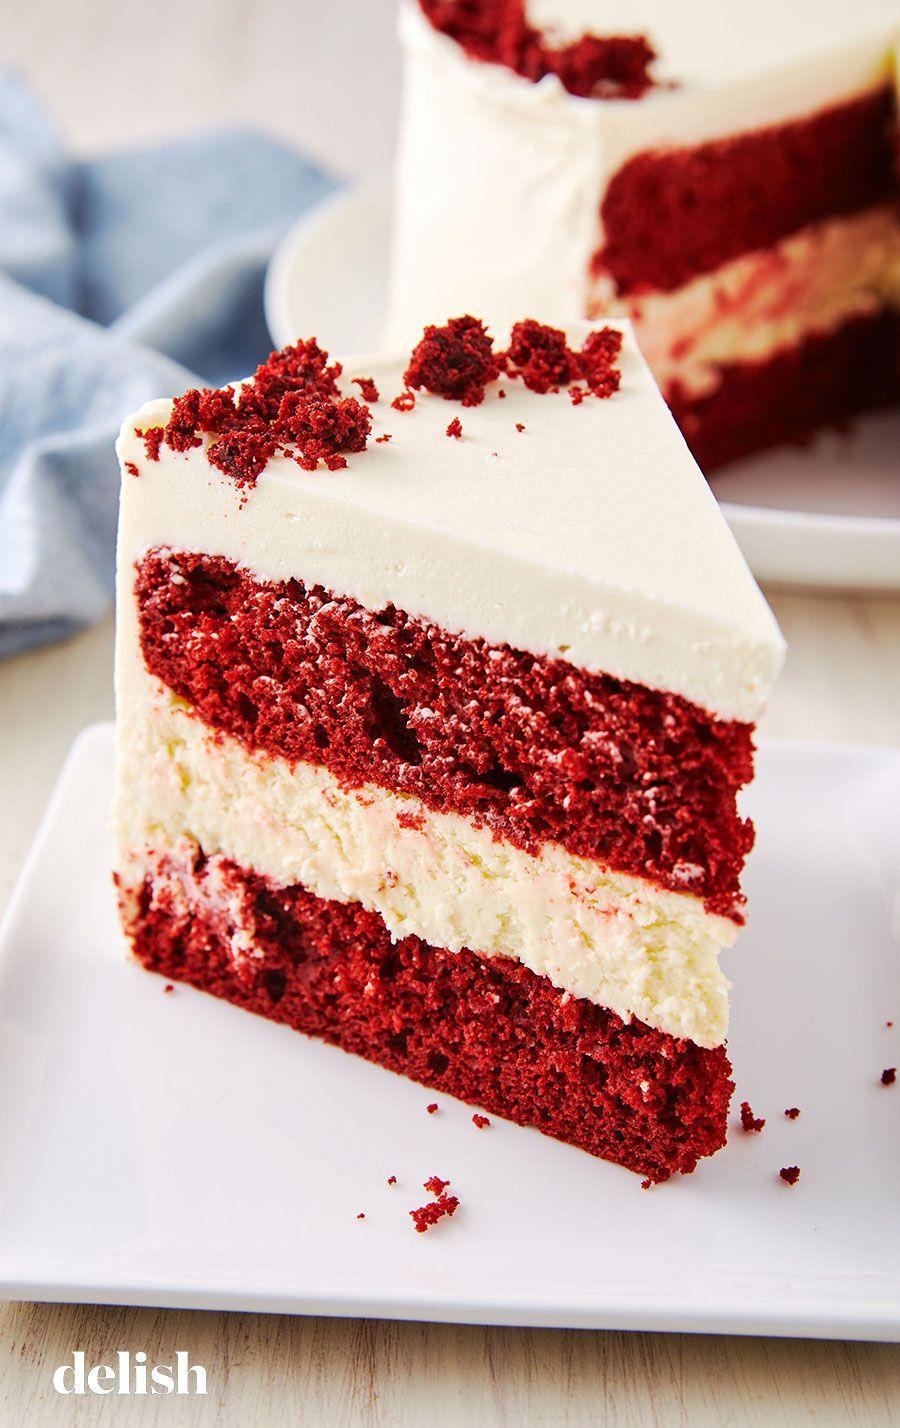 """<p>Talk about a stunner. This layer cake will sleigh your holiday dessert table.</p><p>Get the recipe from <a href=""""/cooking/recipe-ideas/recipes/a50687/red-velvet-cheesecake-cake-recipe/"""" data-ylk=""""slk:Delish"""" class=""""link rapid-noclick-resp"""">Delish</a>.</p>"""